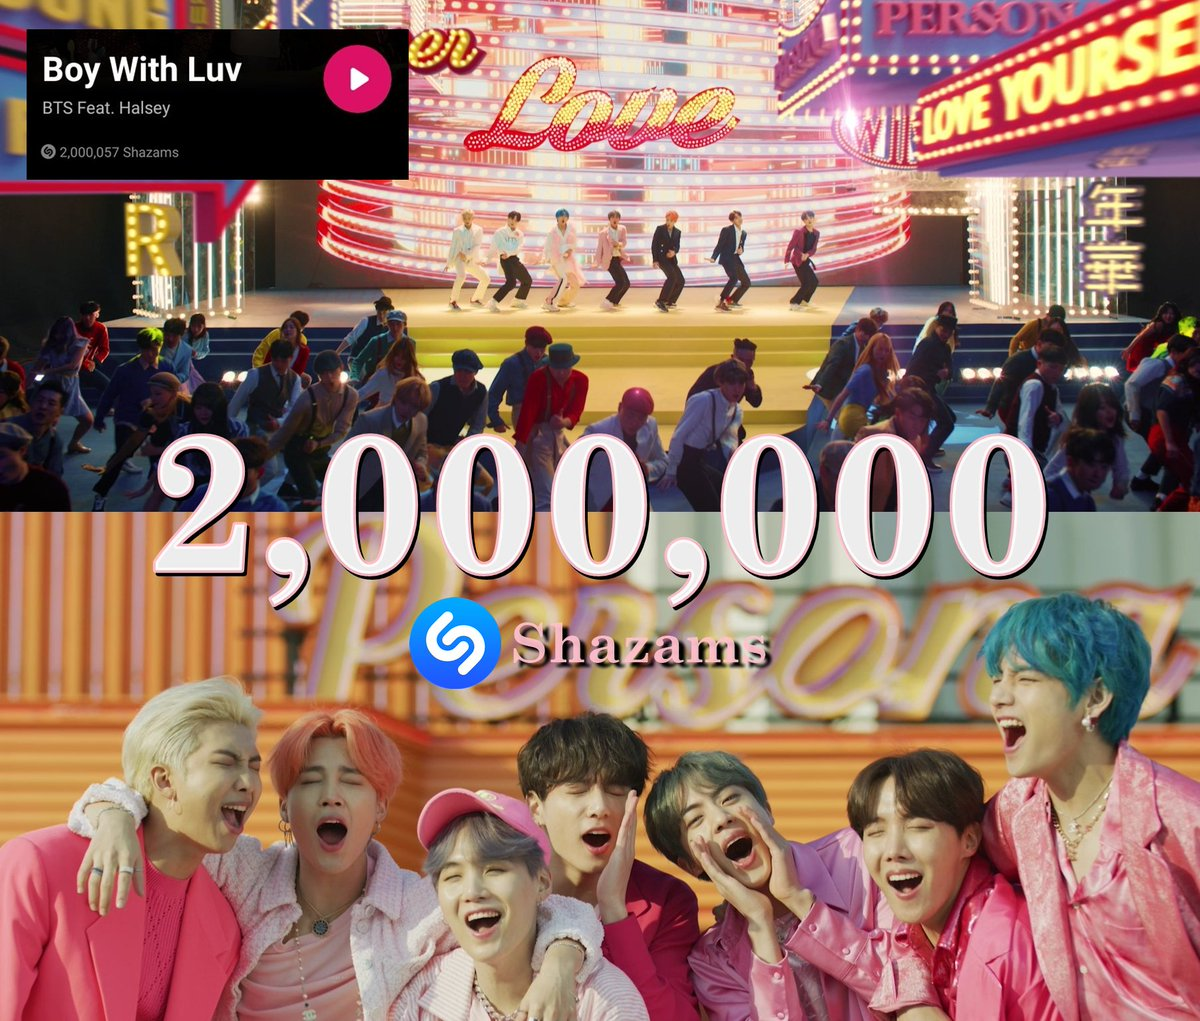 '#BoyWithLuv' has surpassed 2M on Shazam in 212 days. It is @BTS_twt's 2nd fastest song to surpass that mark!  They remain the korean act with the most songs to surprass this mark on the plataform   #BoyWithLuv2MShazams <br>http://pic.twitter.com/8e9estjeEx